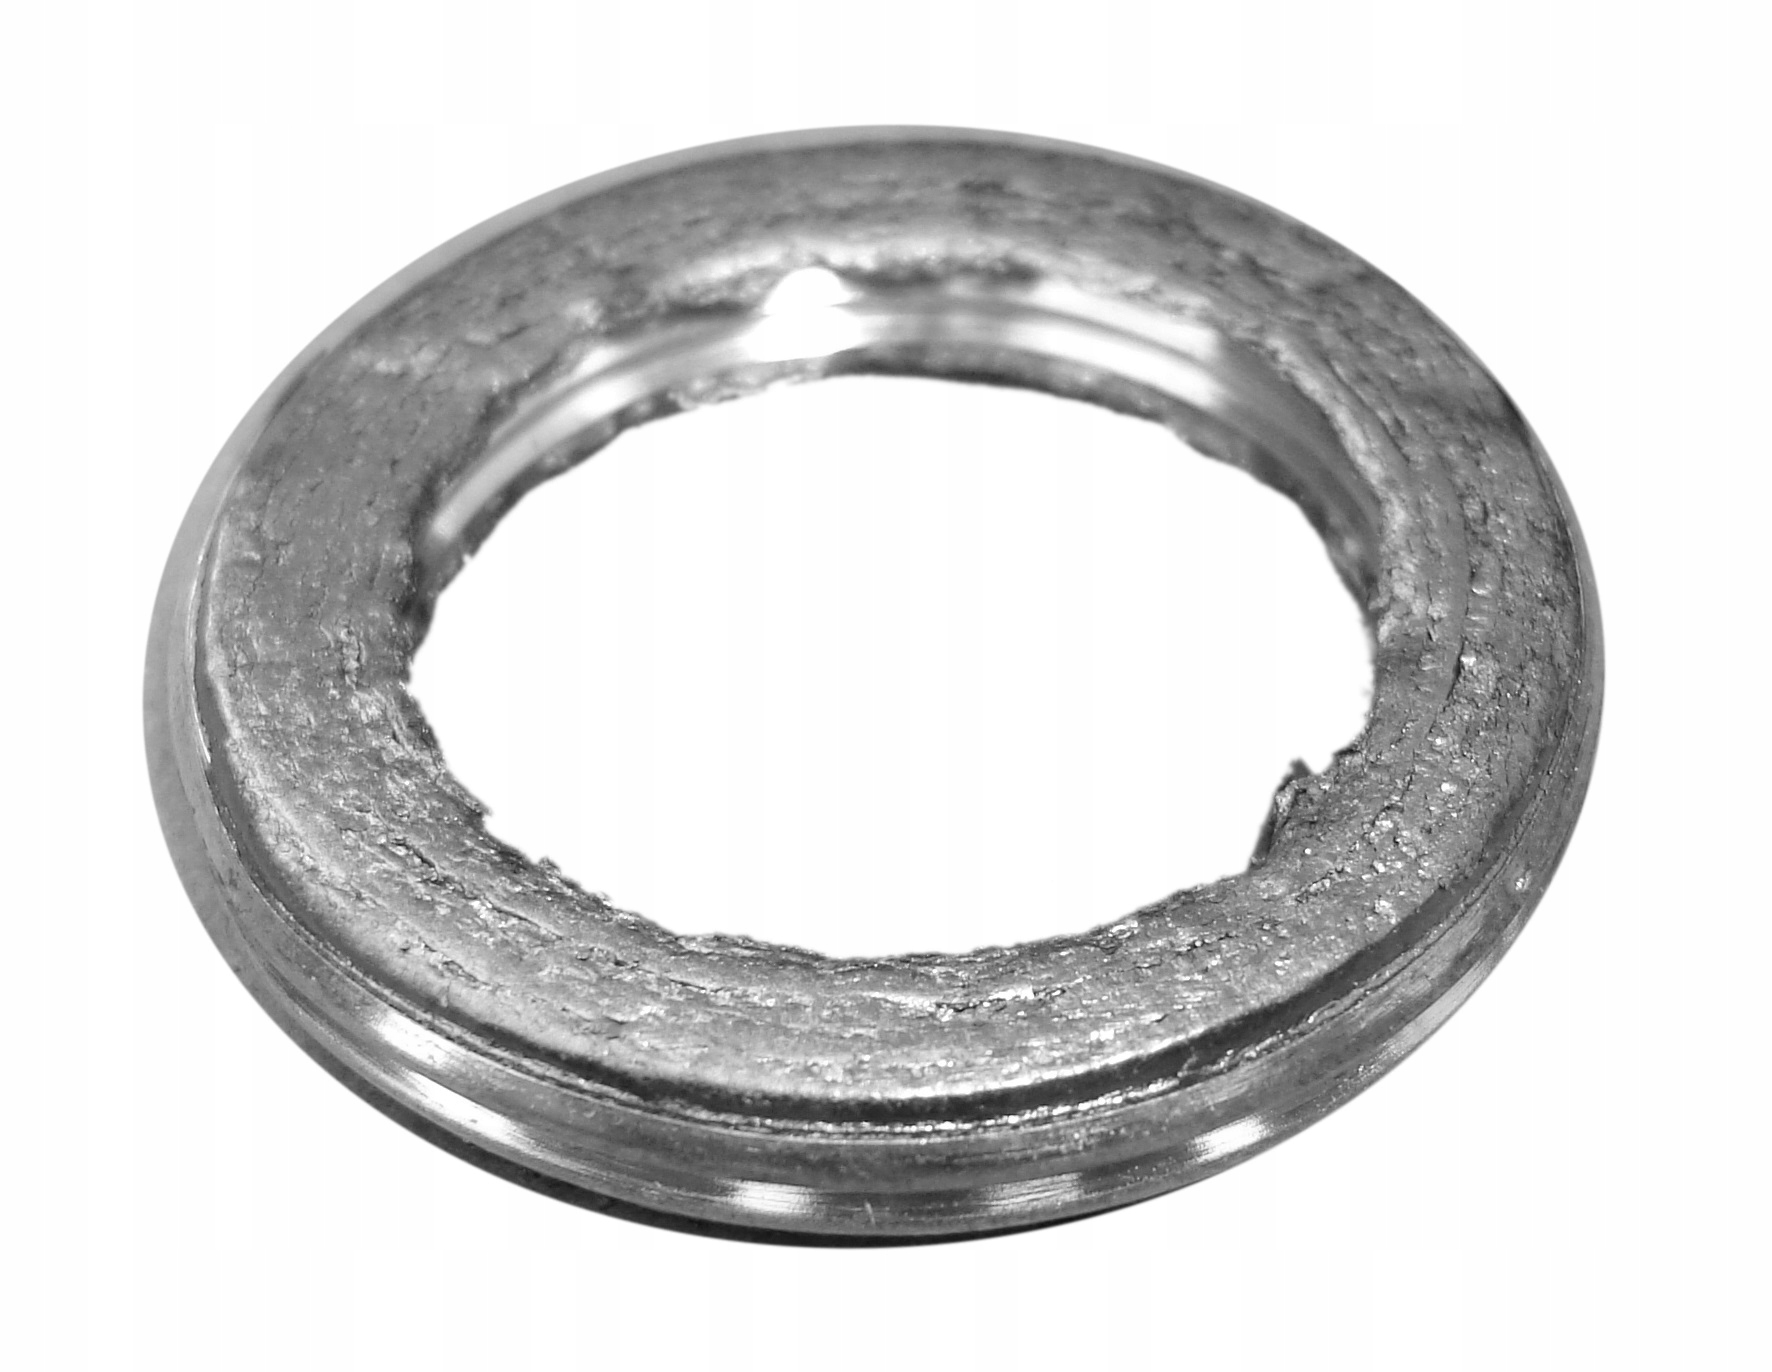 GASKET MUFFLER/EXHAUST GAS KNOT SCOOTER 4T GY6 QMB